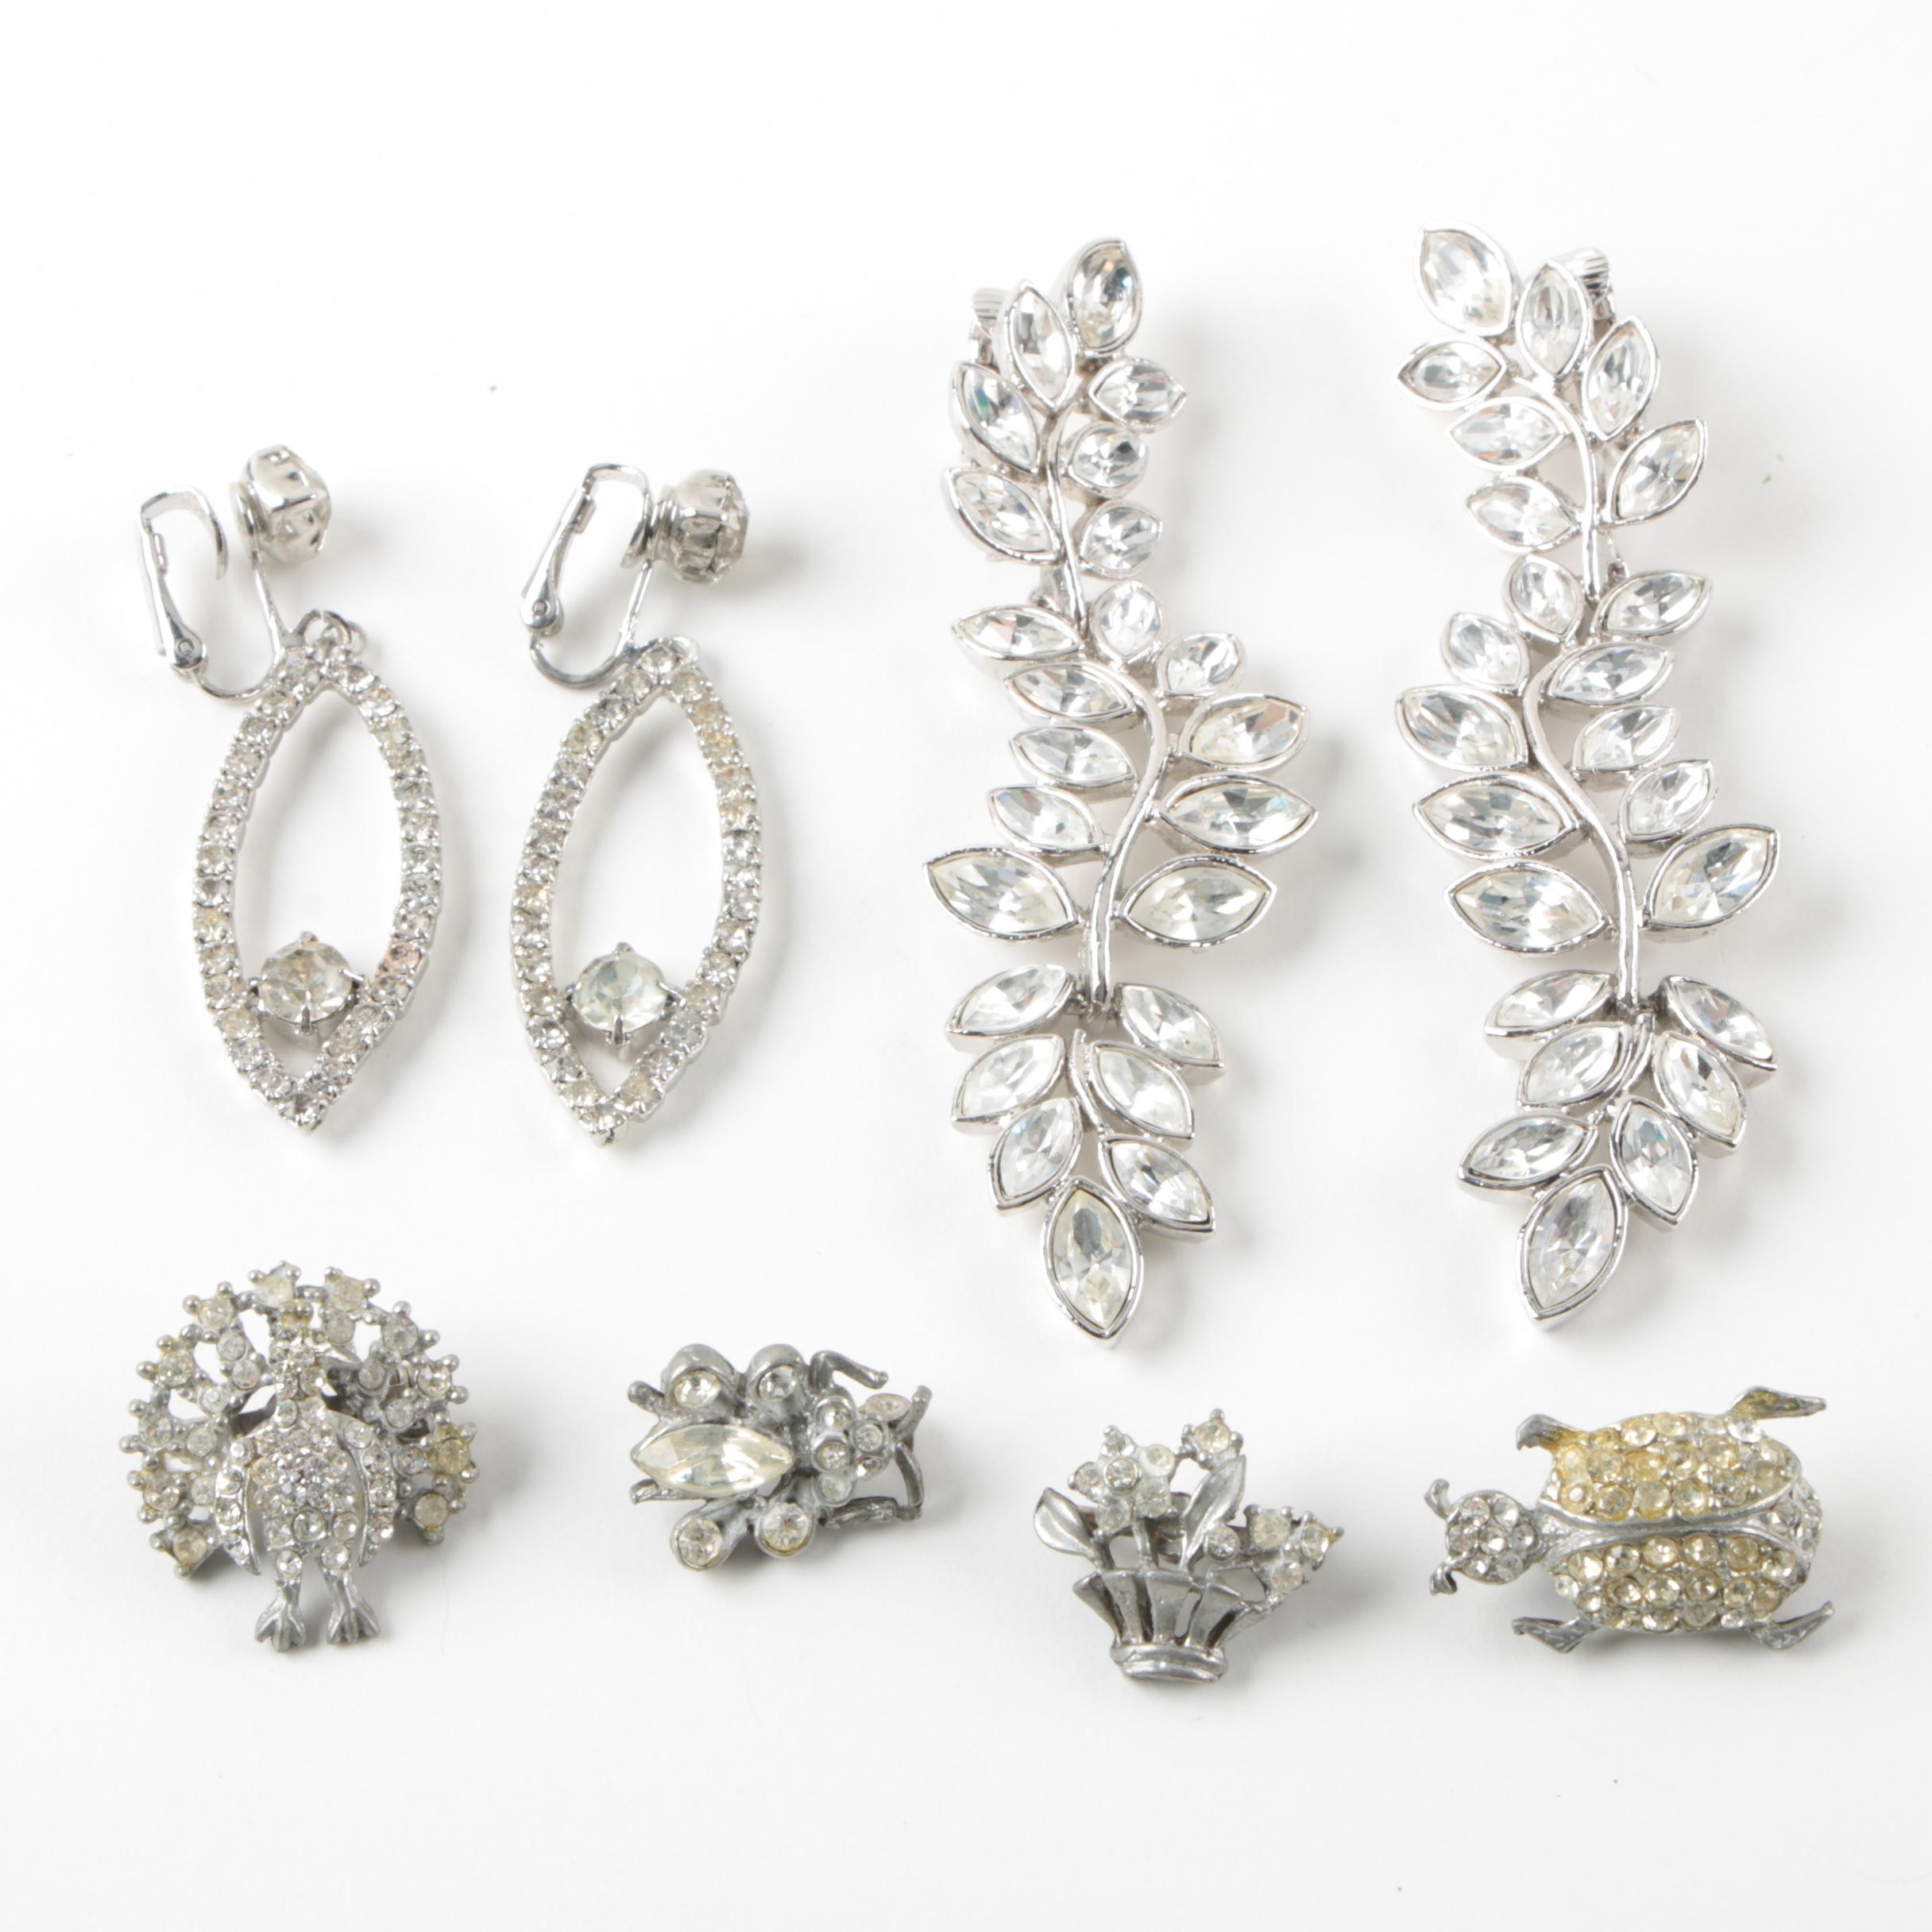 Silver Tone Foilback Earrings and Brooches Includes Kenneth Lane